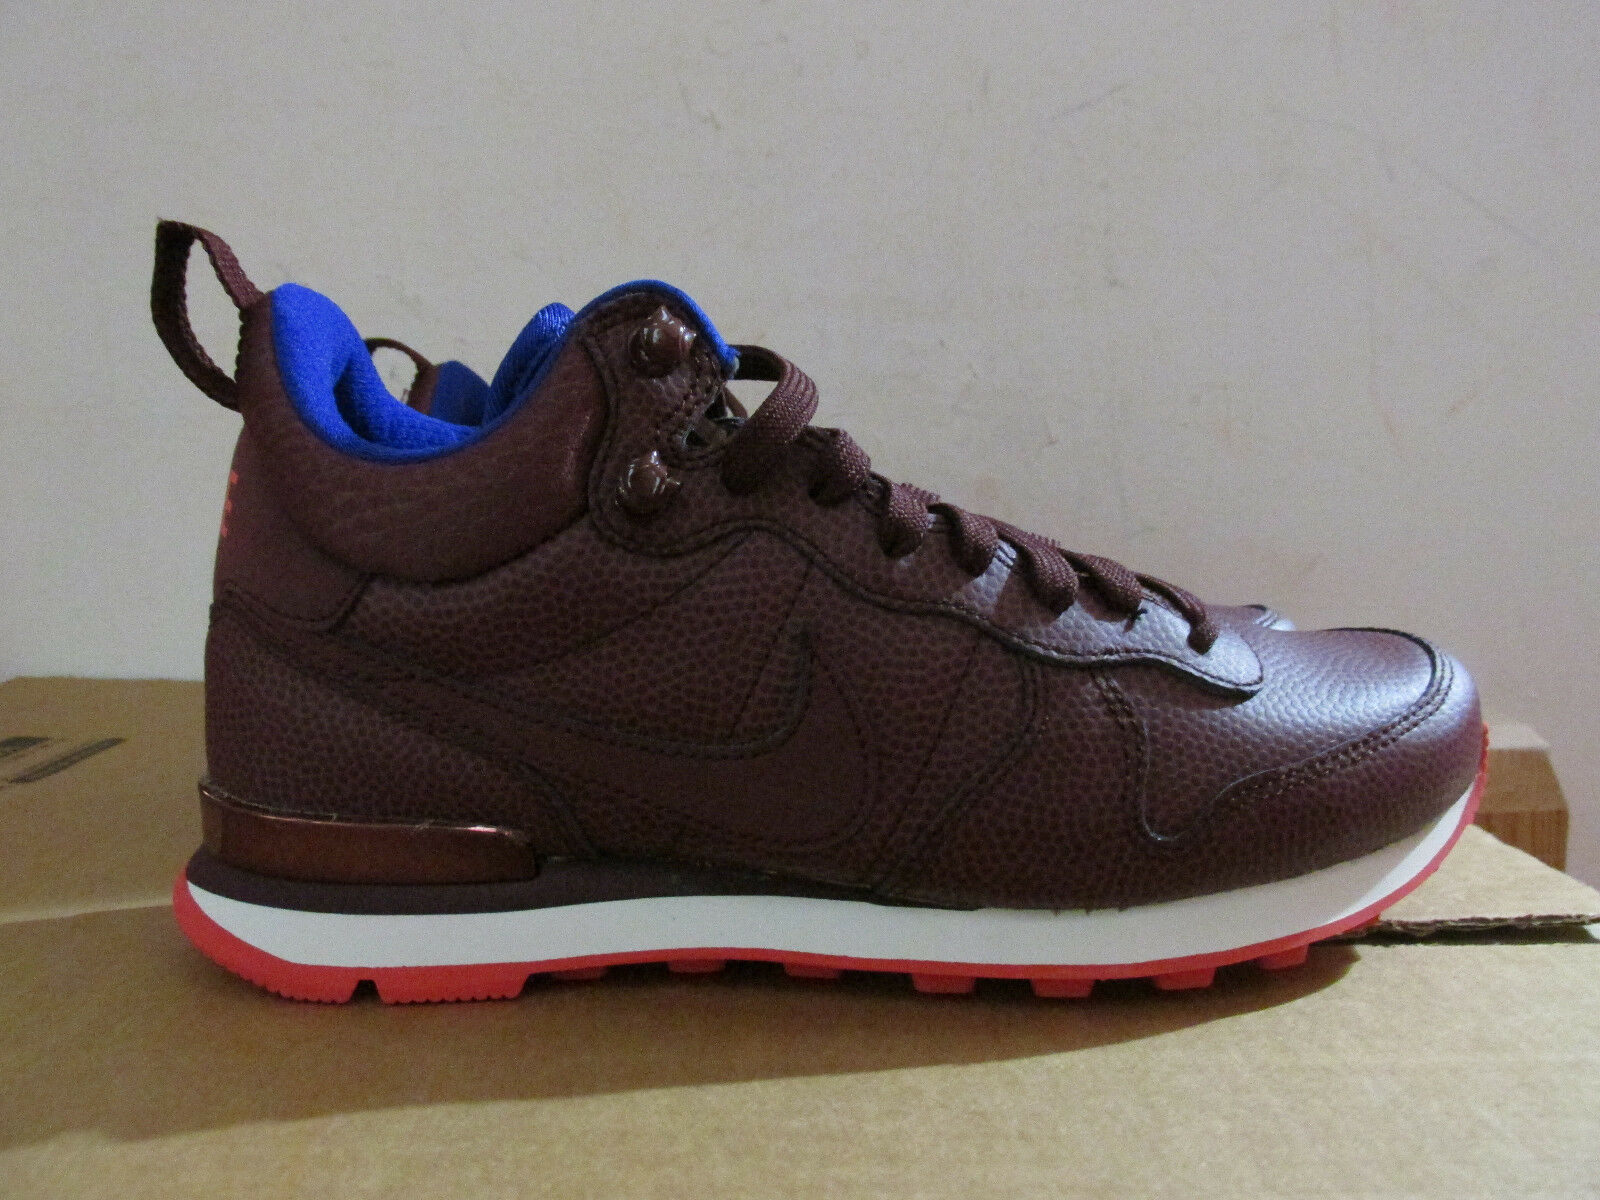 Nike Damenschuhe Top Internationalist Mid Lthr Hi Top Damenschuhe Trainers 859549 600 CLEARANCE be9c8e